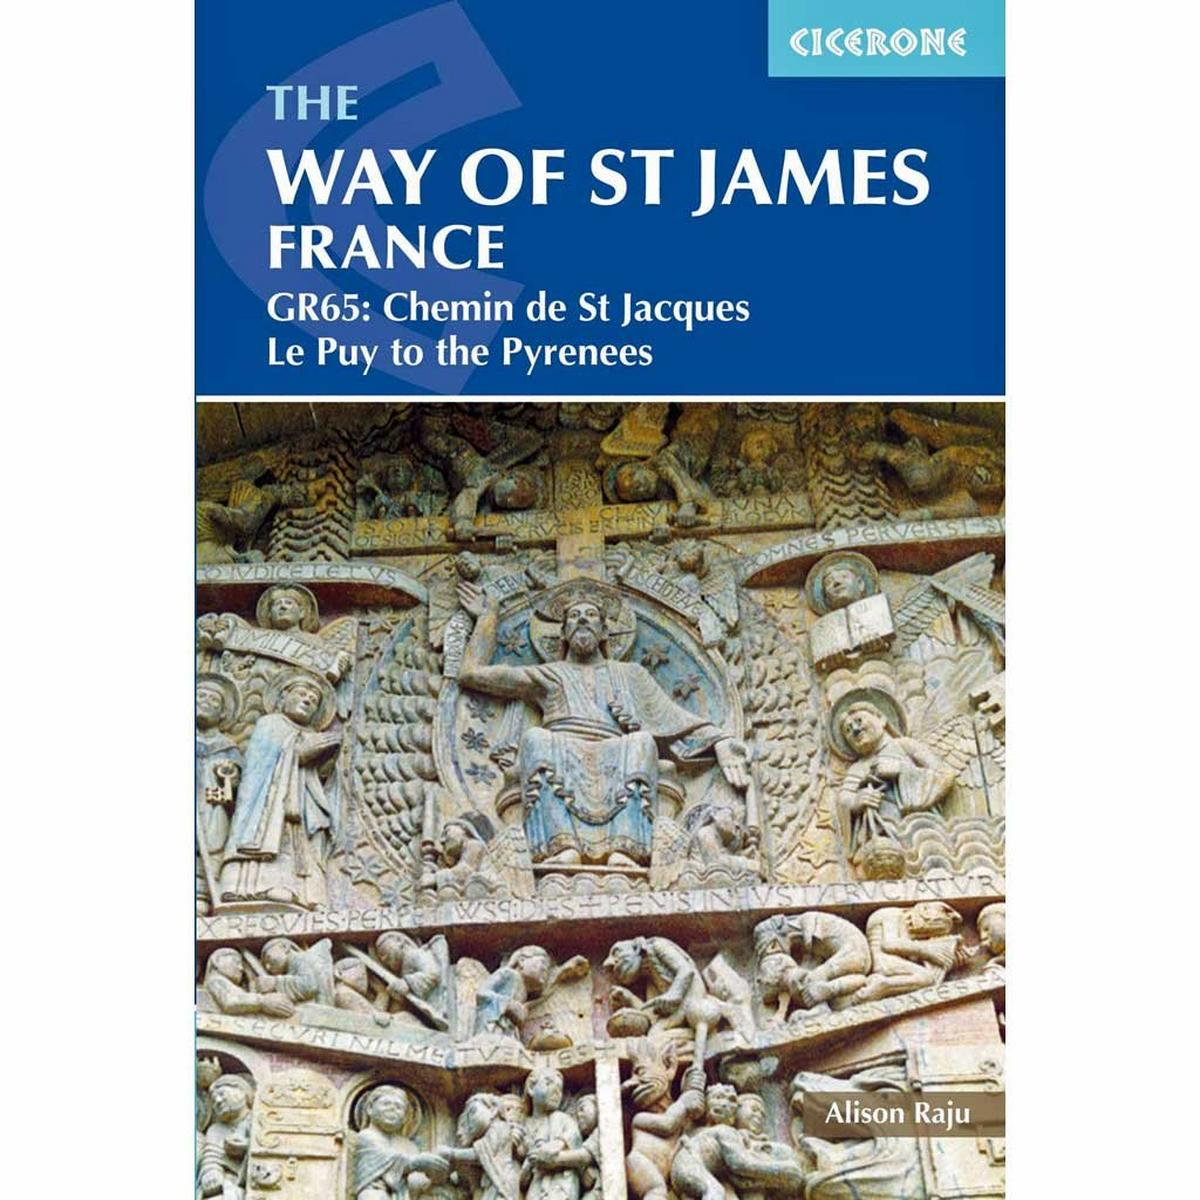 Cicerone Walking Guide Book: The Way of St James, France GR65, Le Puy to the Pyr